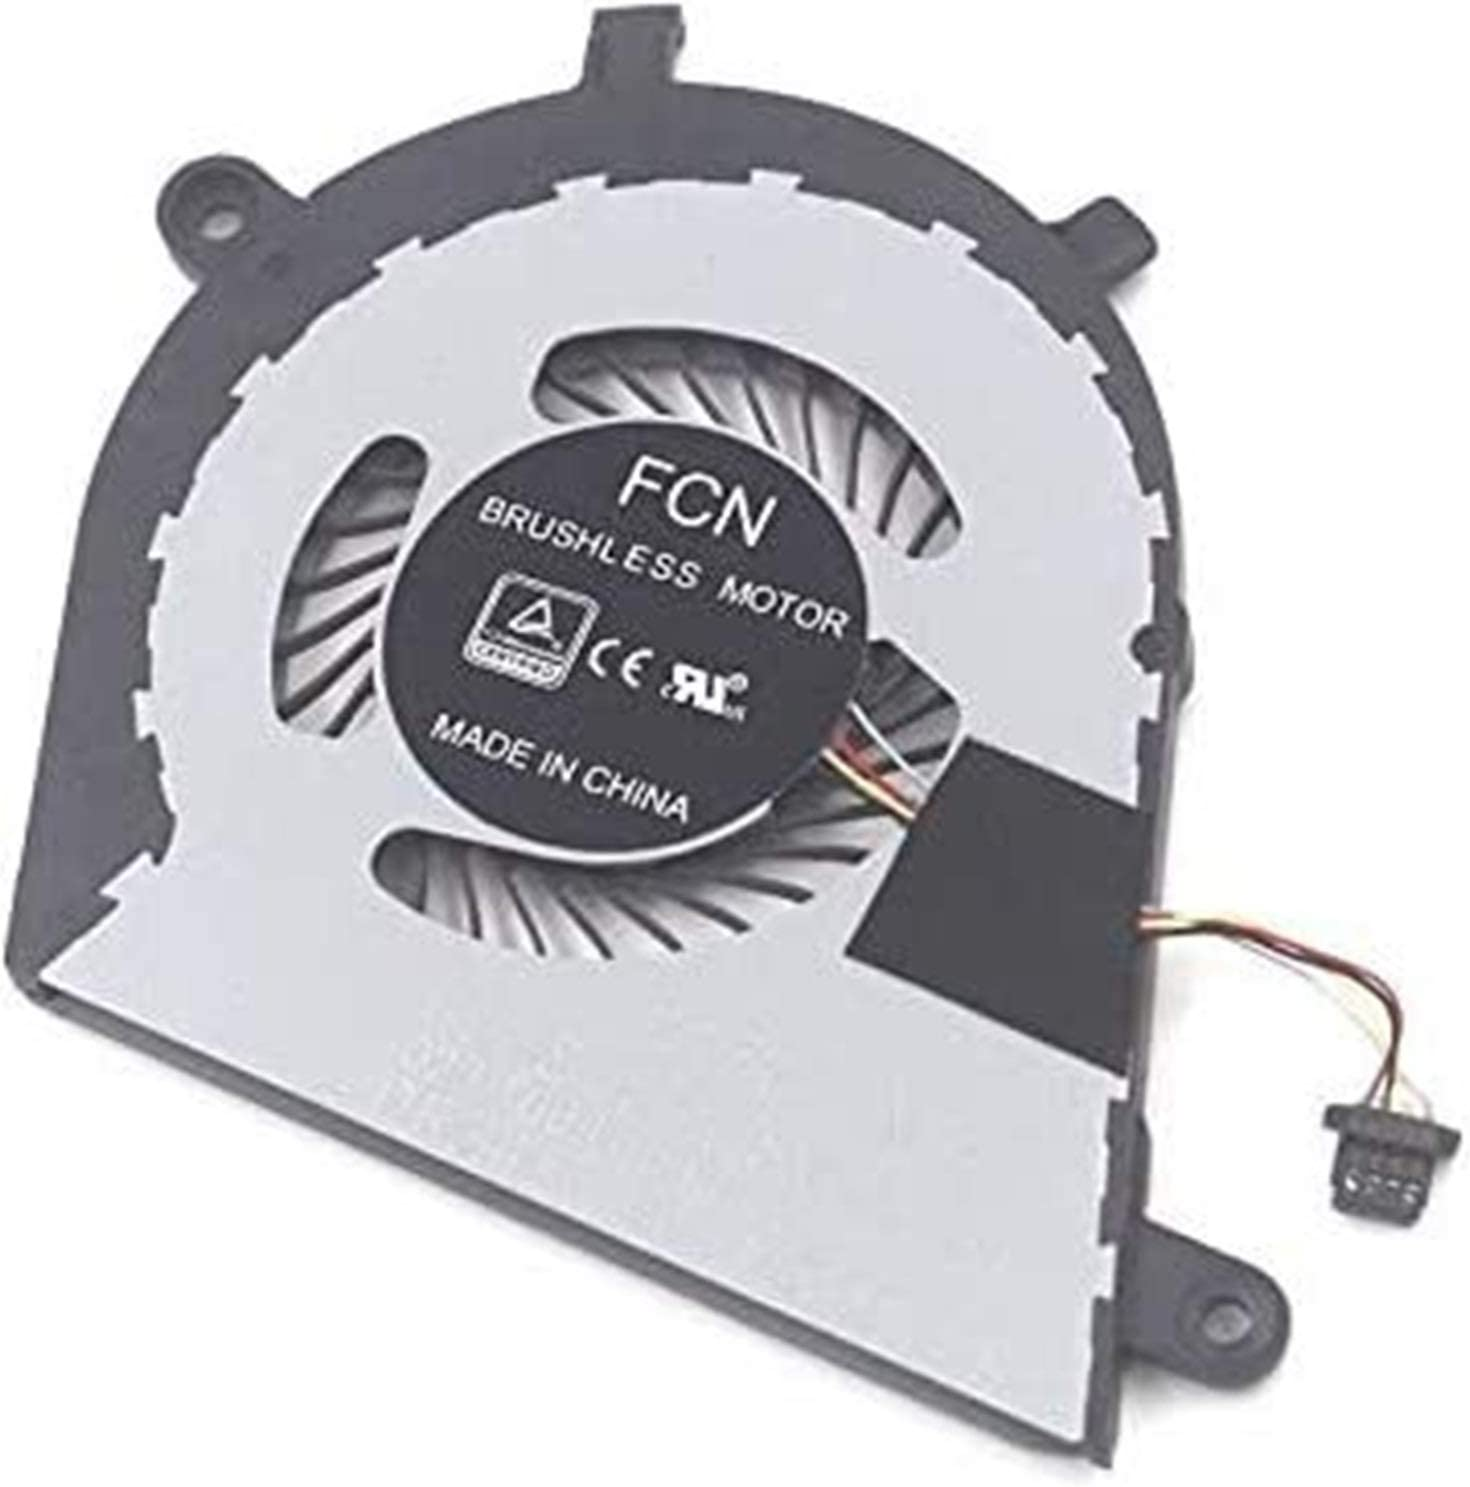 CPU Fan New Laptop CPU Cooling Fan Replacement for Dell Inspiron 7373 7370 I7373-5558GRY-PUS P83G DJFK0 0DJFK0 Accessories.